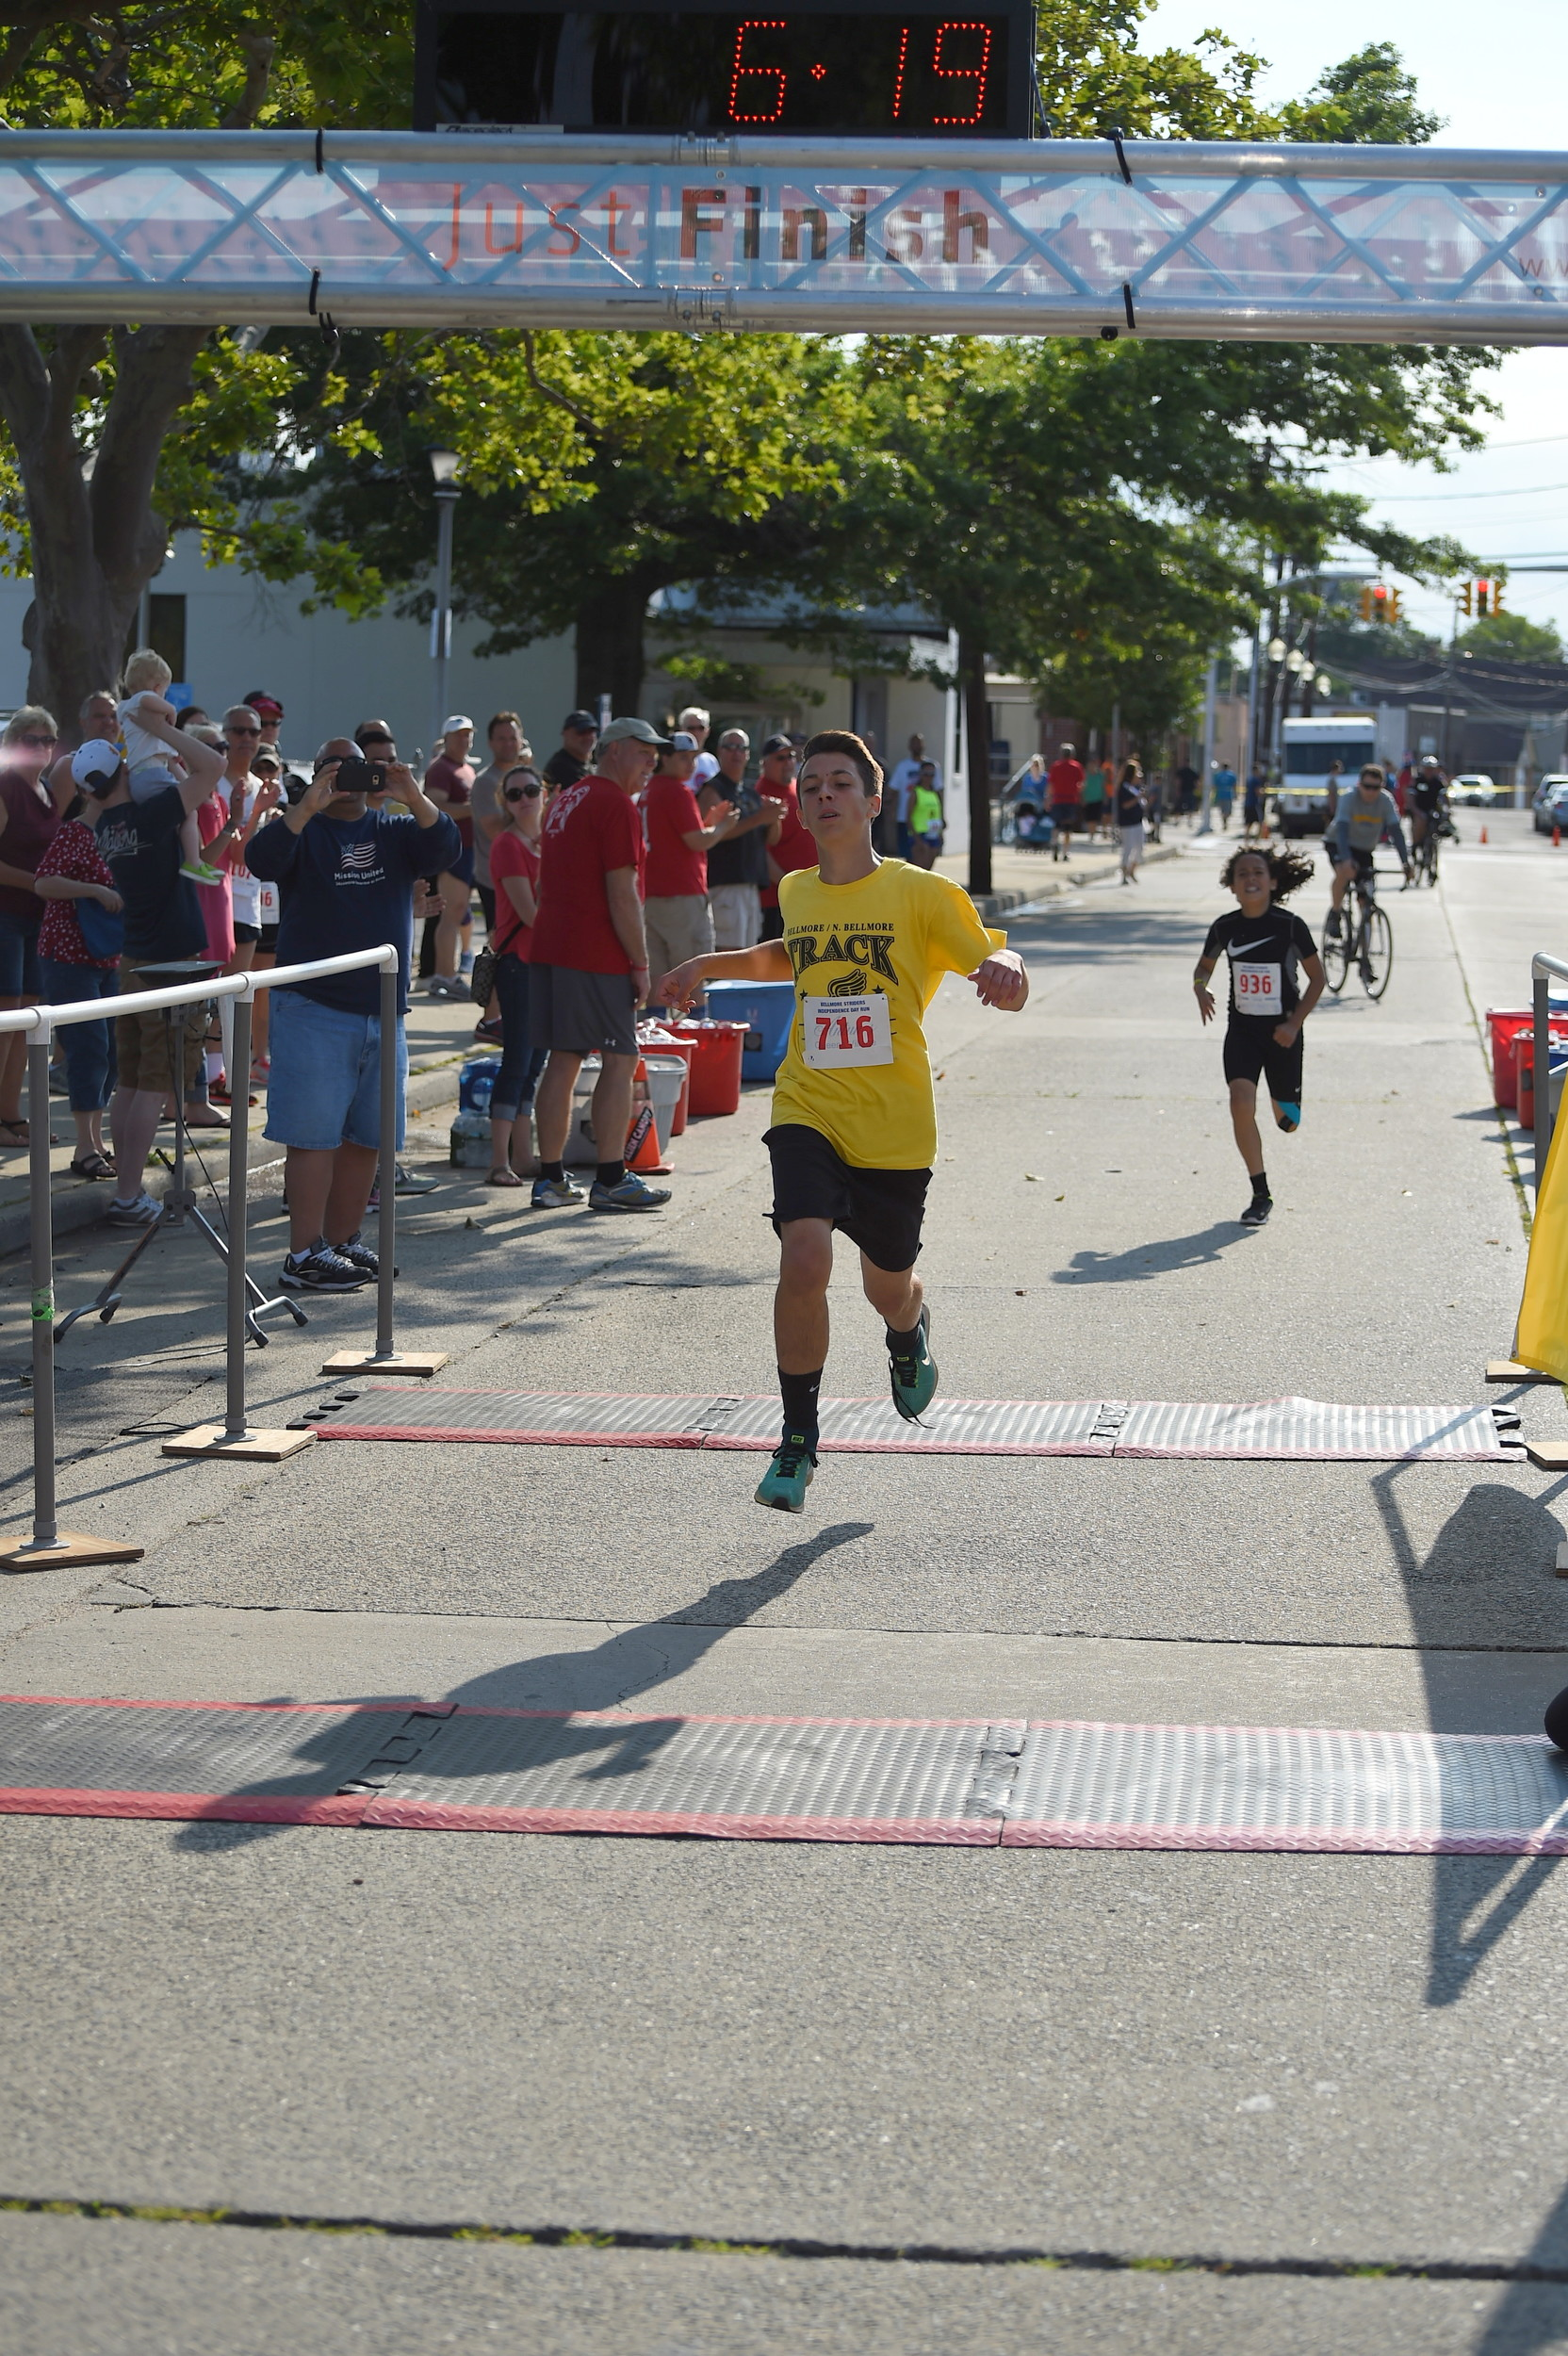 Anthony Scotto, 13, of North Bellmore, crossed the finish line in the one-mile race.